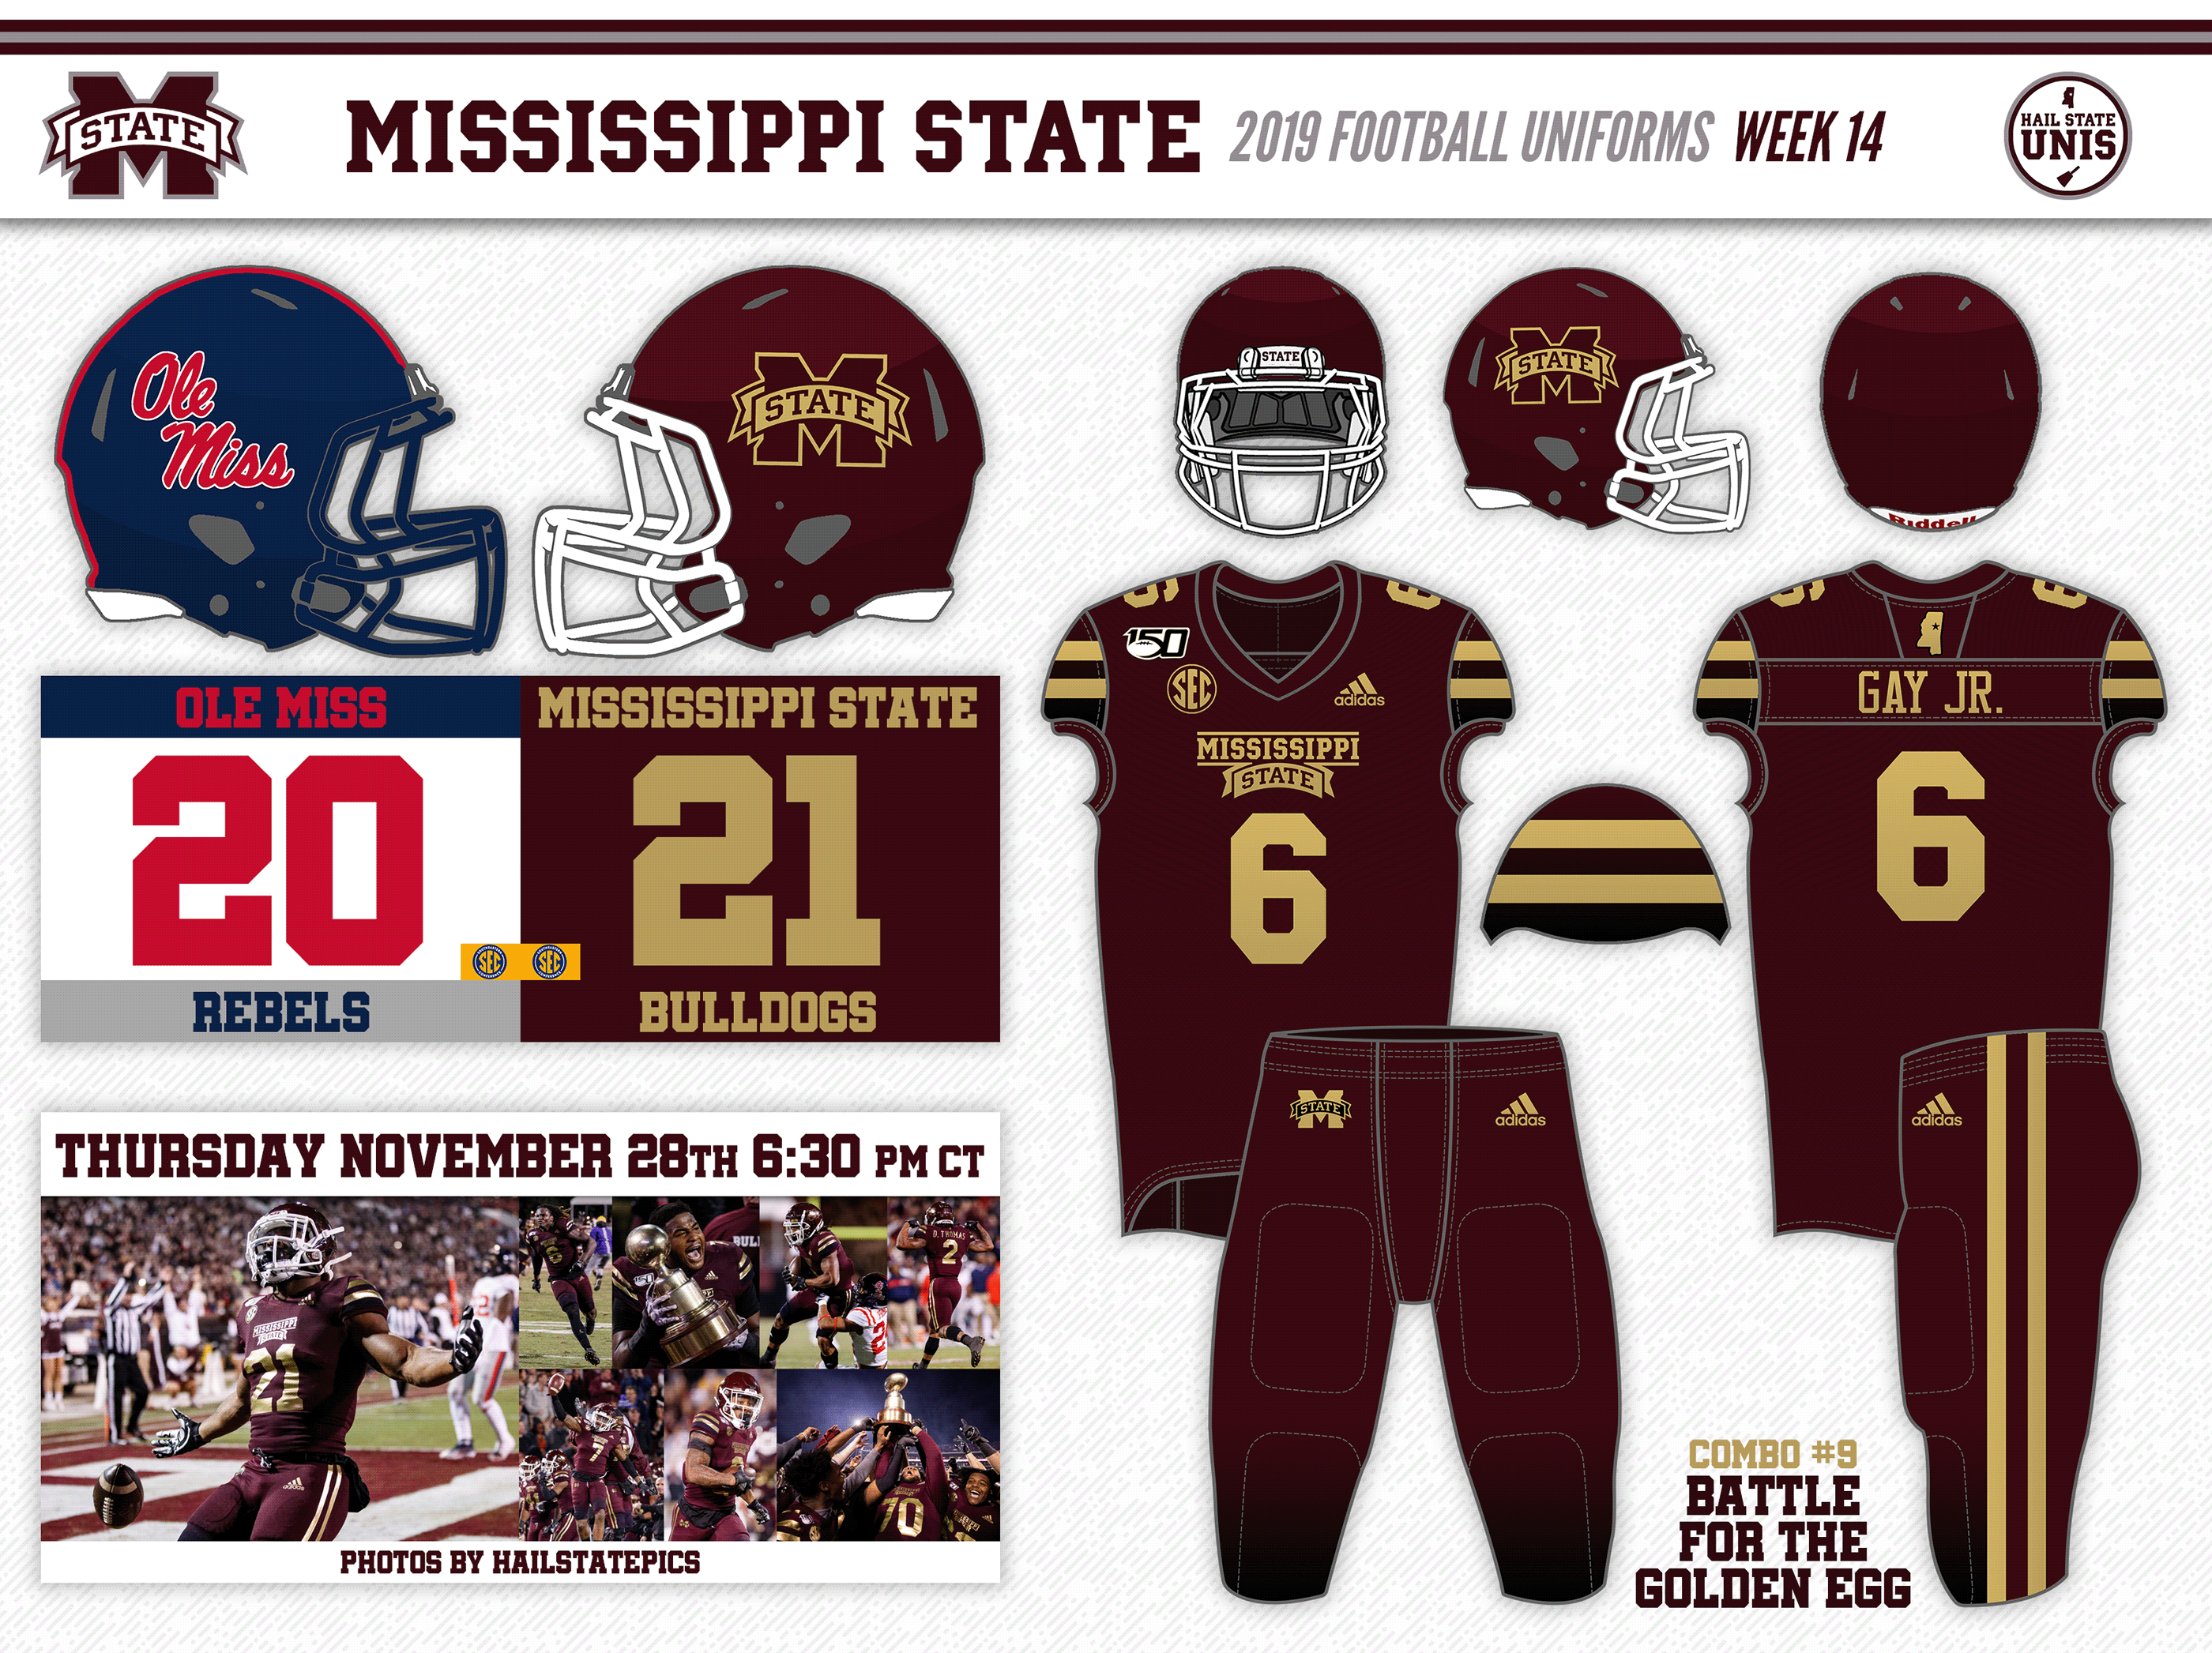 Mississippi State Brings Back The Gold Beats Ole Miss To Keep The Egg Hail State Unis